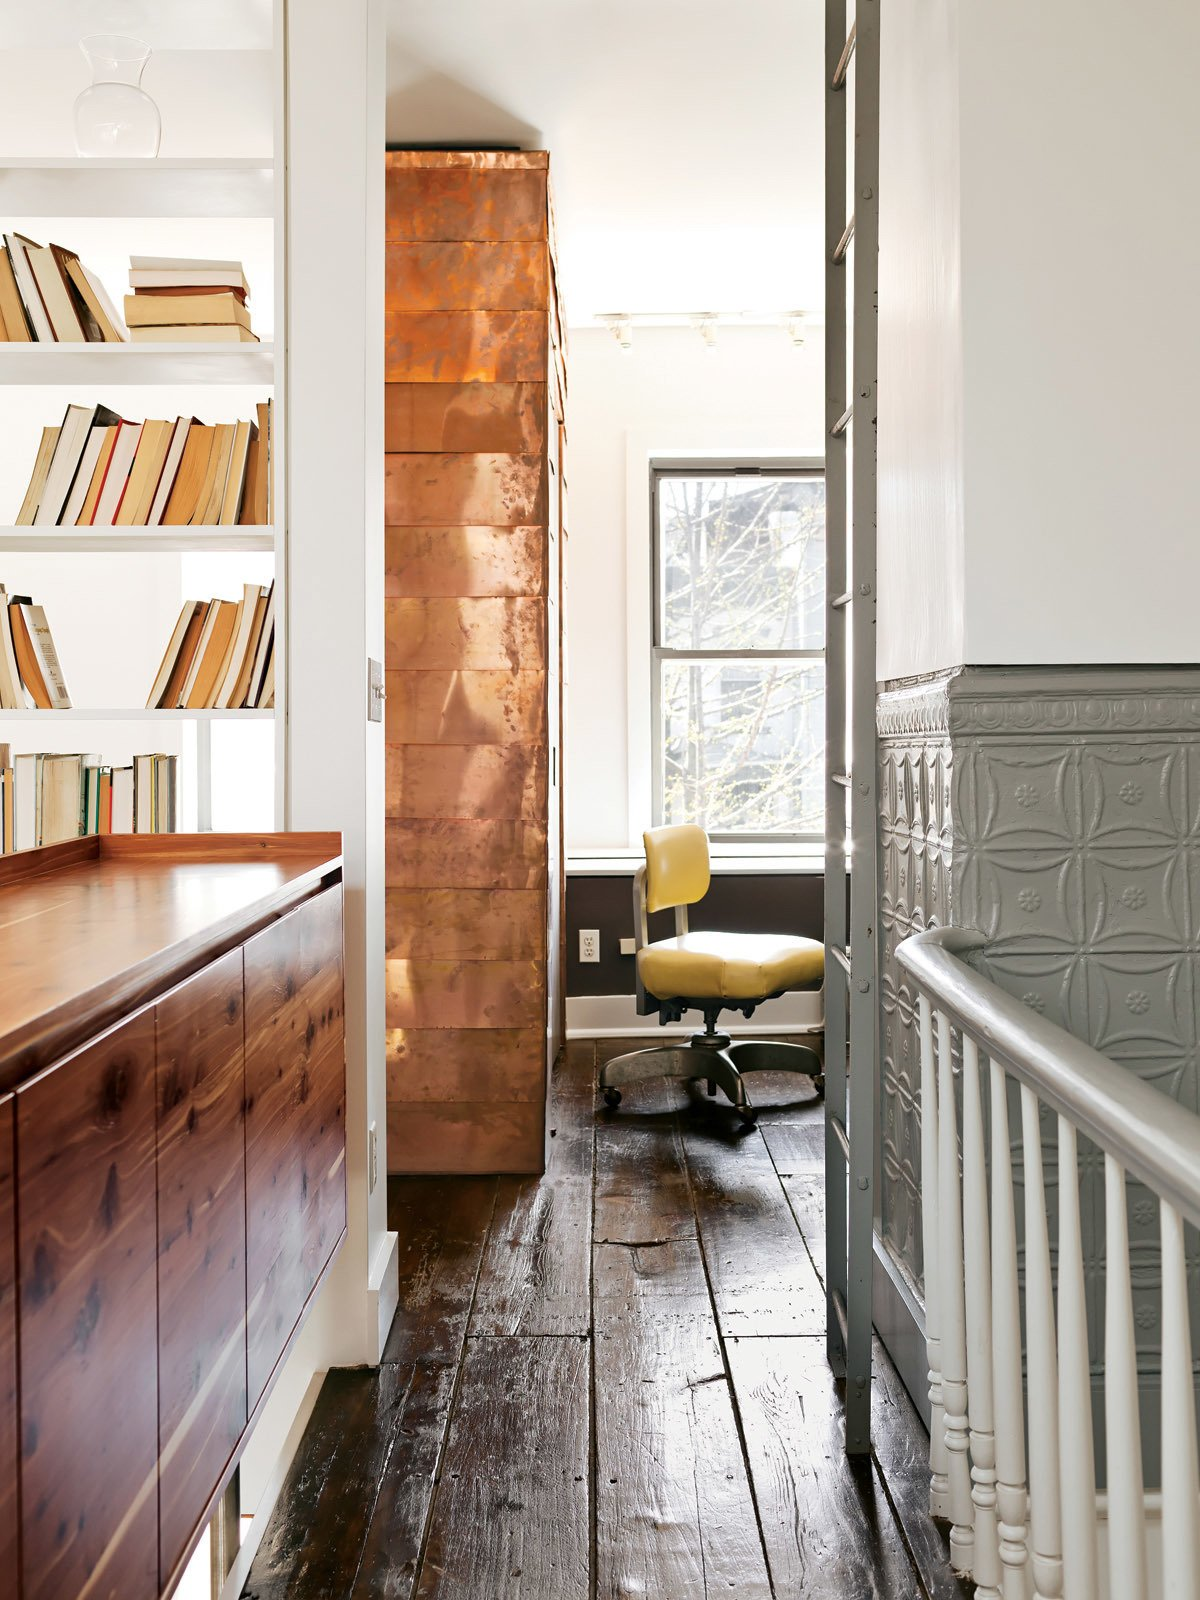 The copper-covered volume extends from the first floor, where it contains coat and shoe storage. Tagged: Office, Chair, and Shelves.  Fall Design Trend: Gold, Brass, and Copper Accents by Megan Hamaker from New Prospects